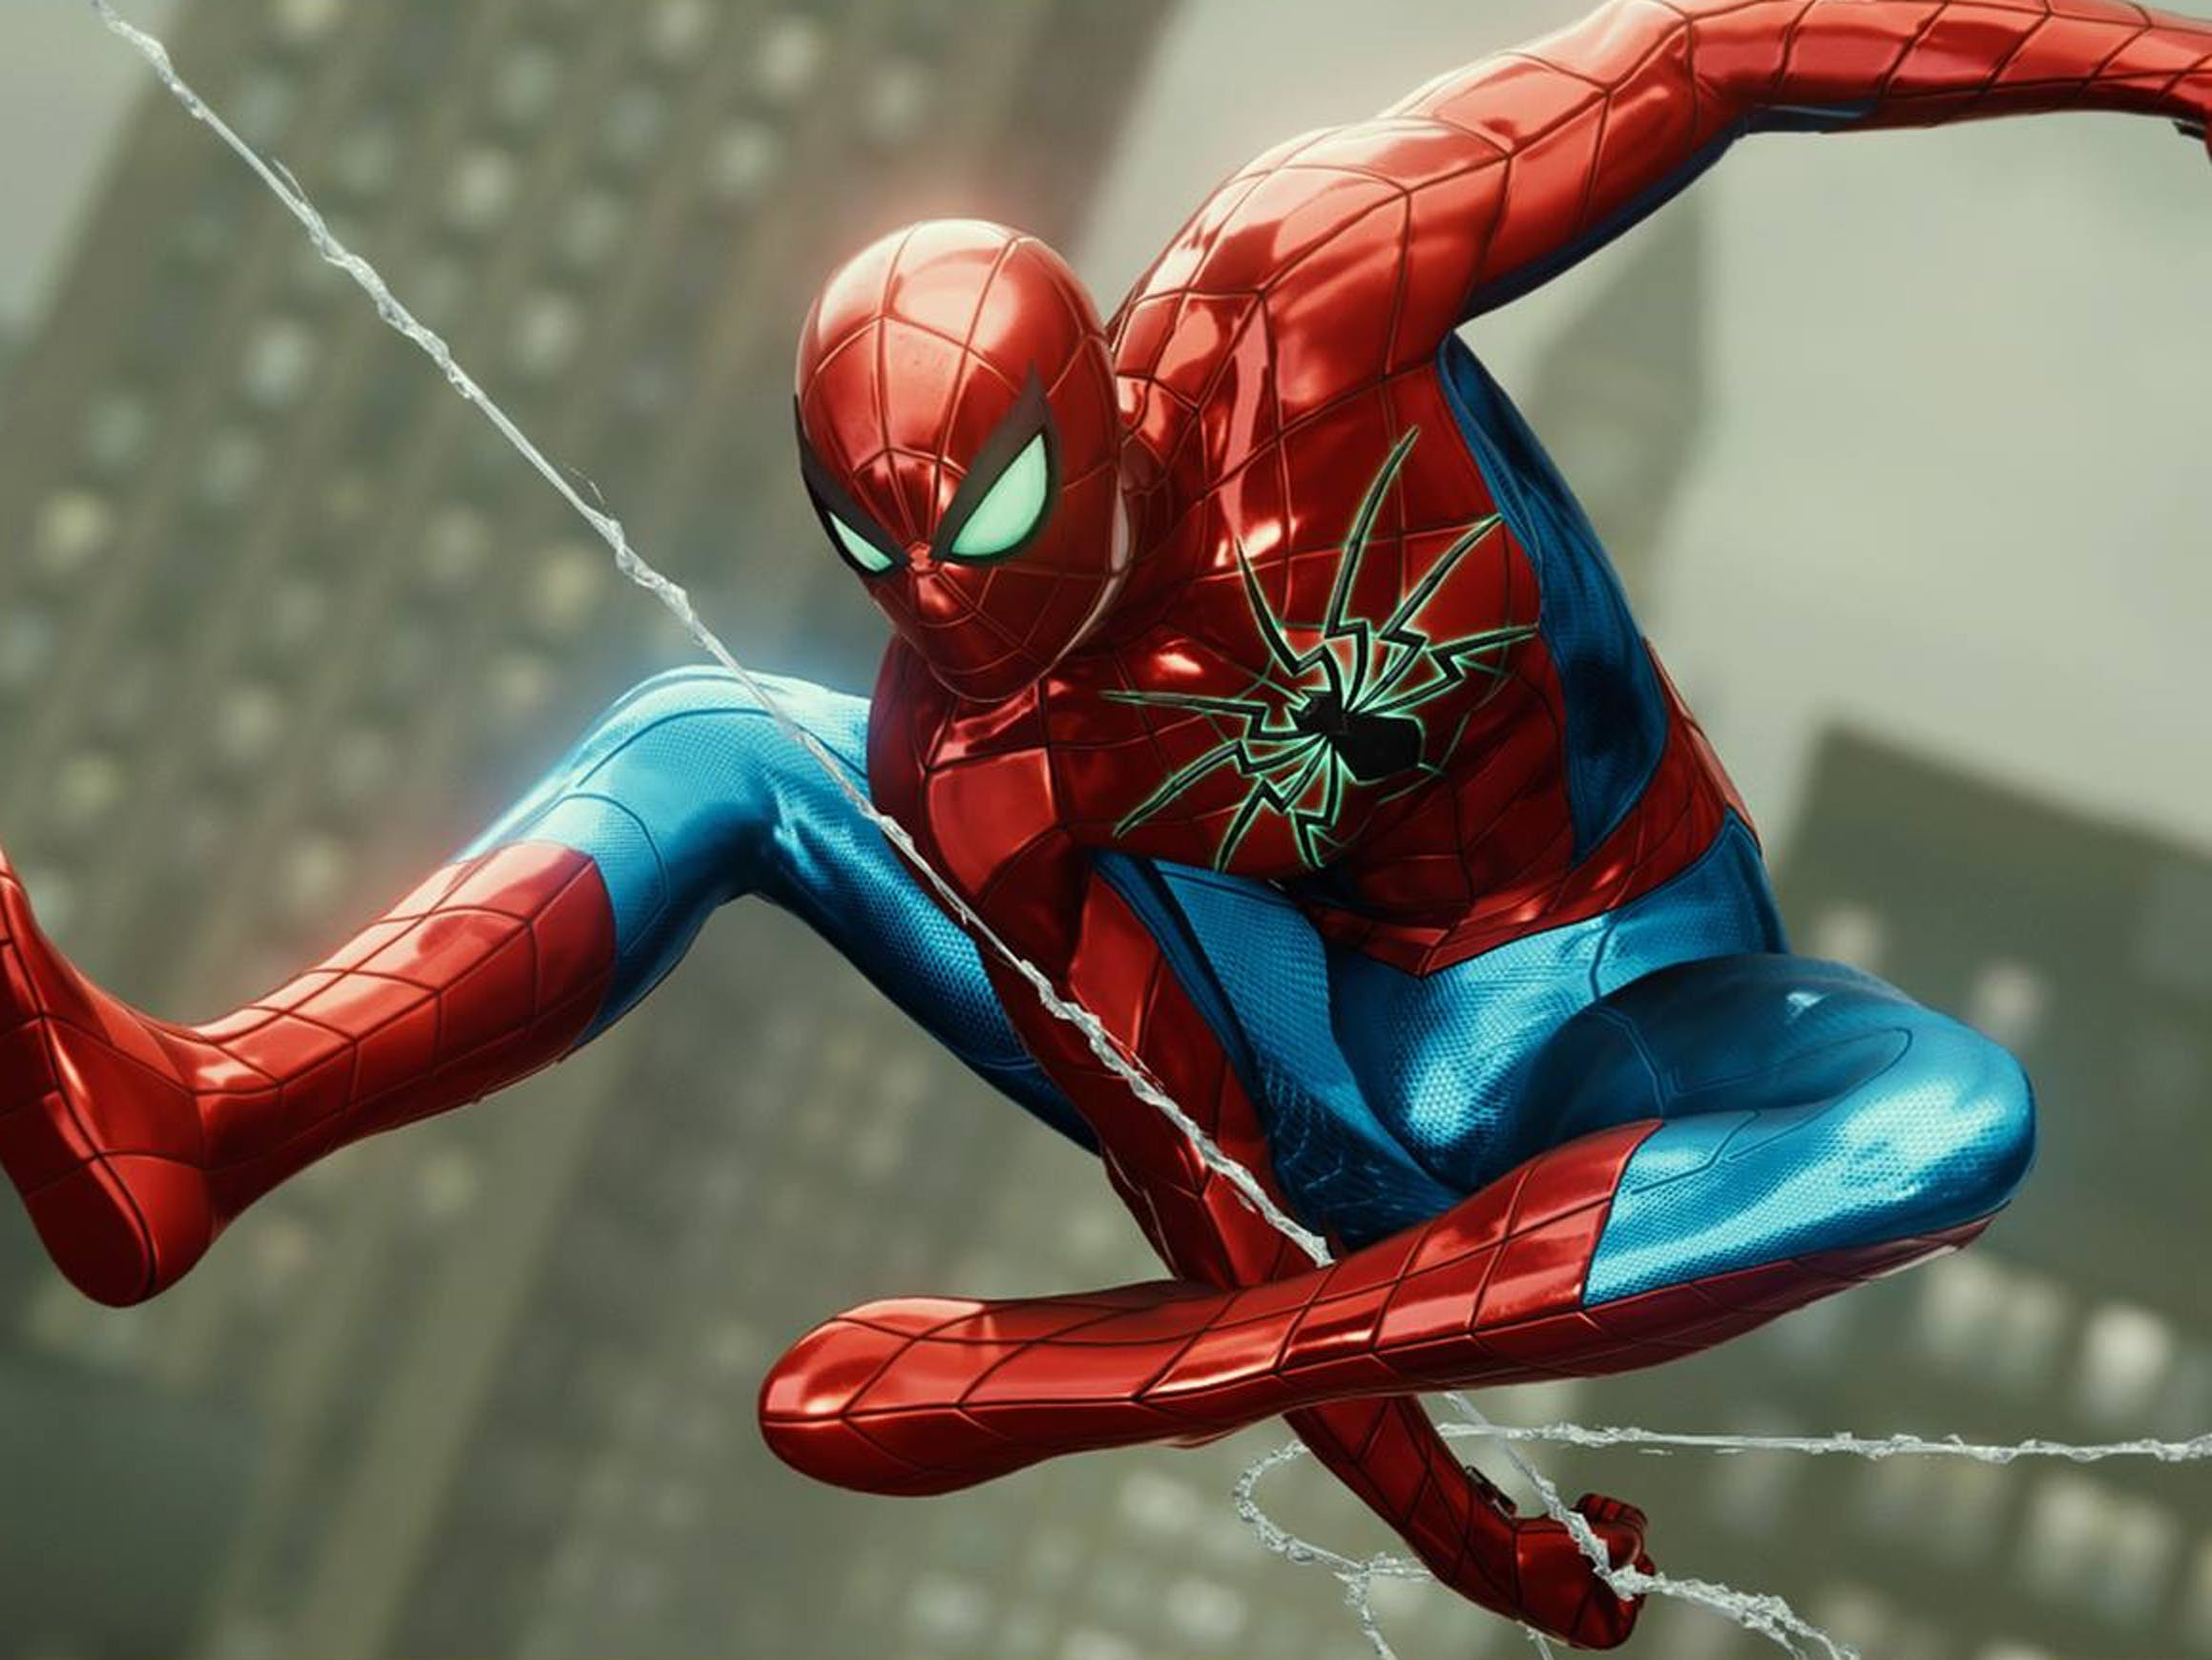 Spider-Man PS4 MK IV Armor